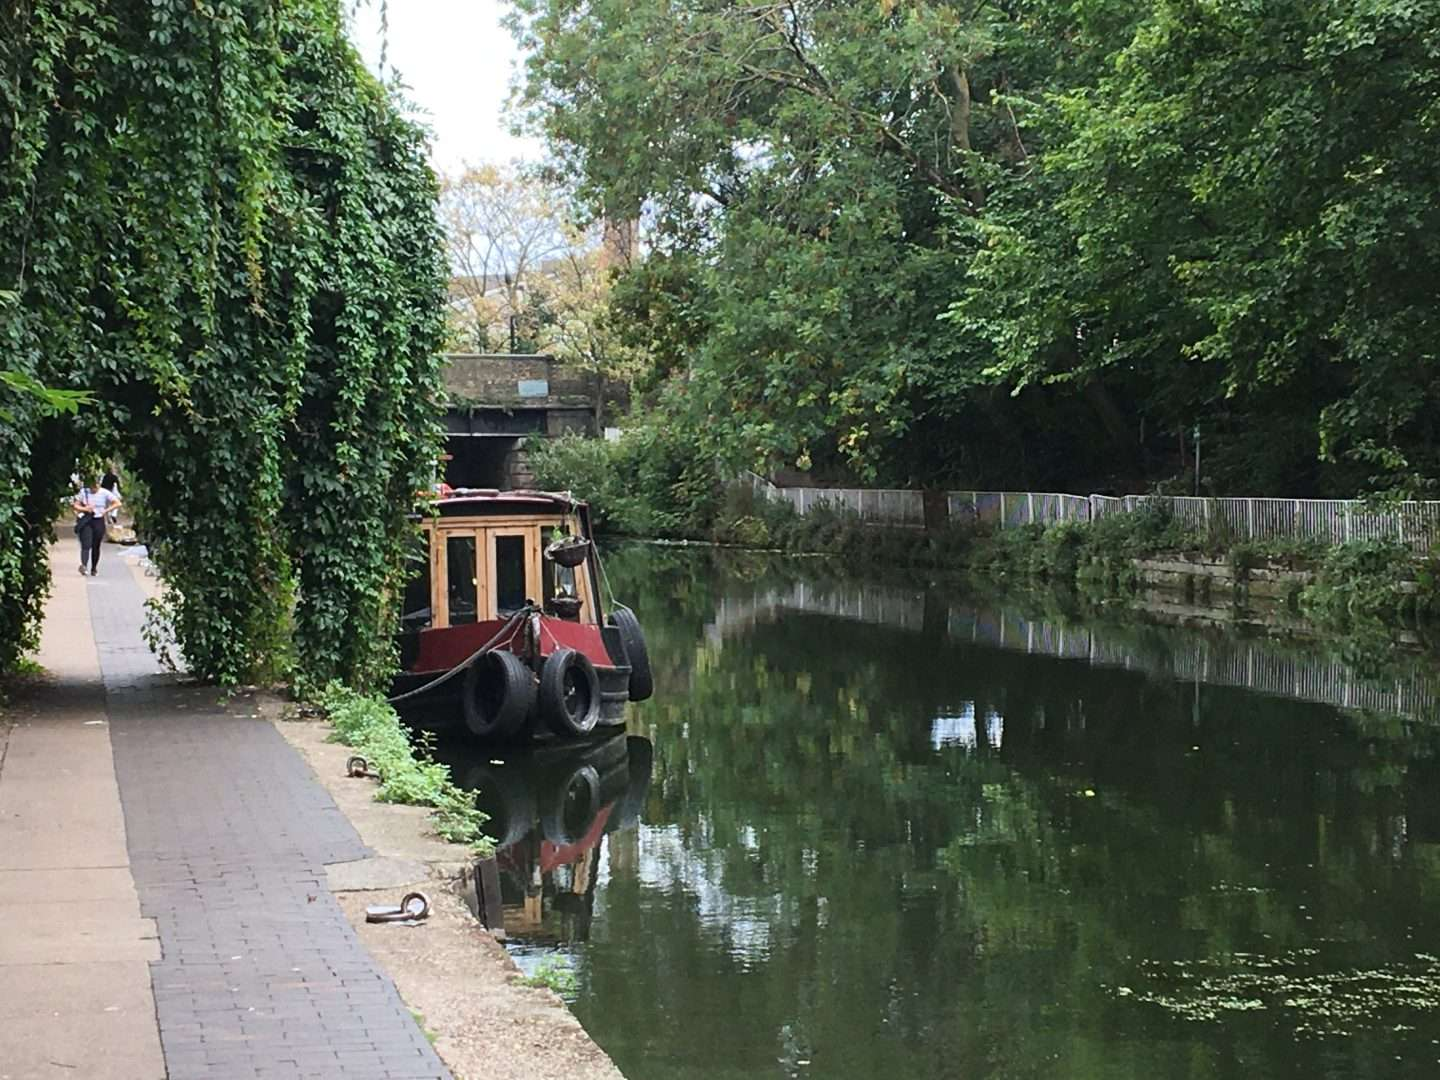 greenery on canal